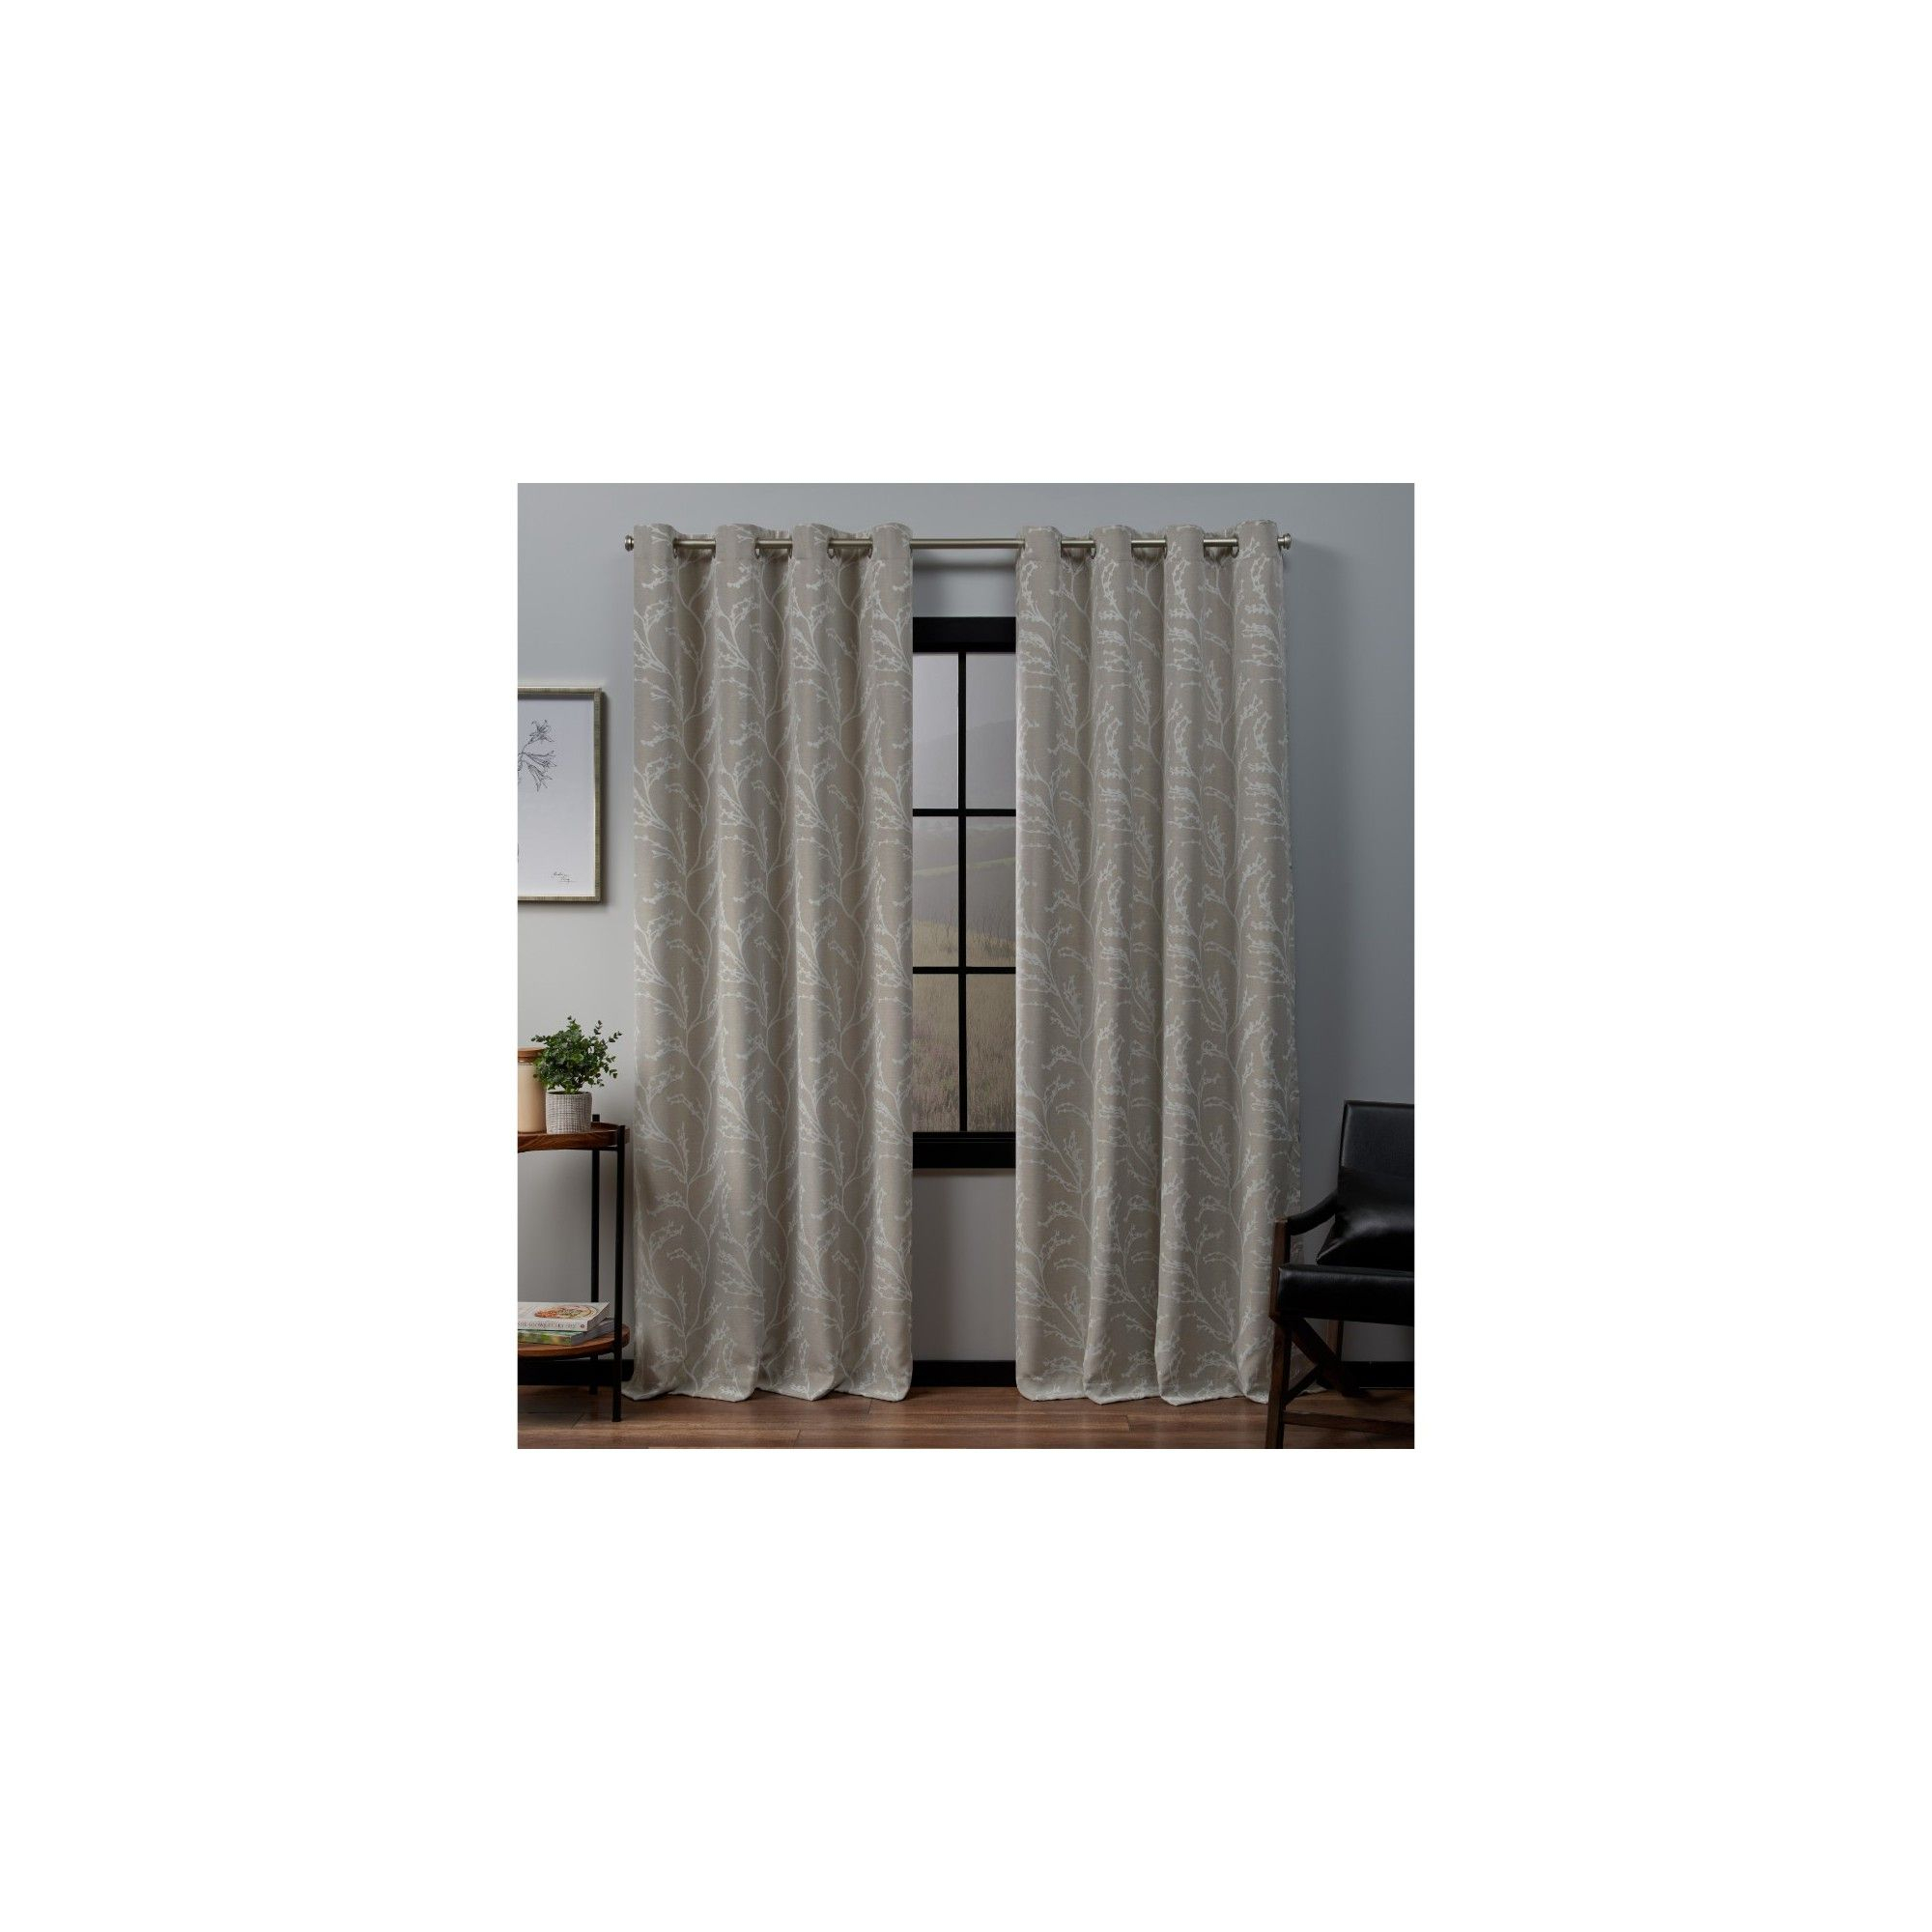 """52""""x63"""" Kilberry Woven Blackout Grommet Top Window Curtain Pertaining To Penny Sheer Grommet Top Curtain Panel Pairs (View 5 of 20)"""